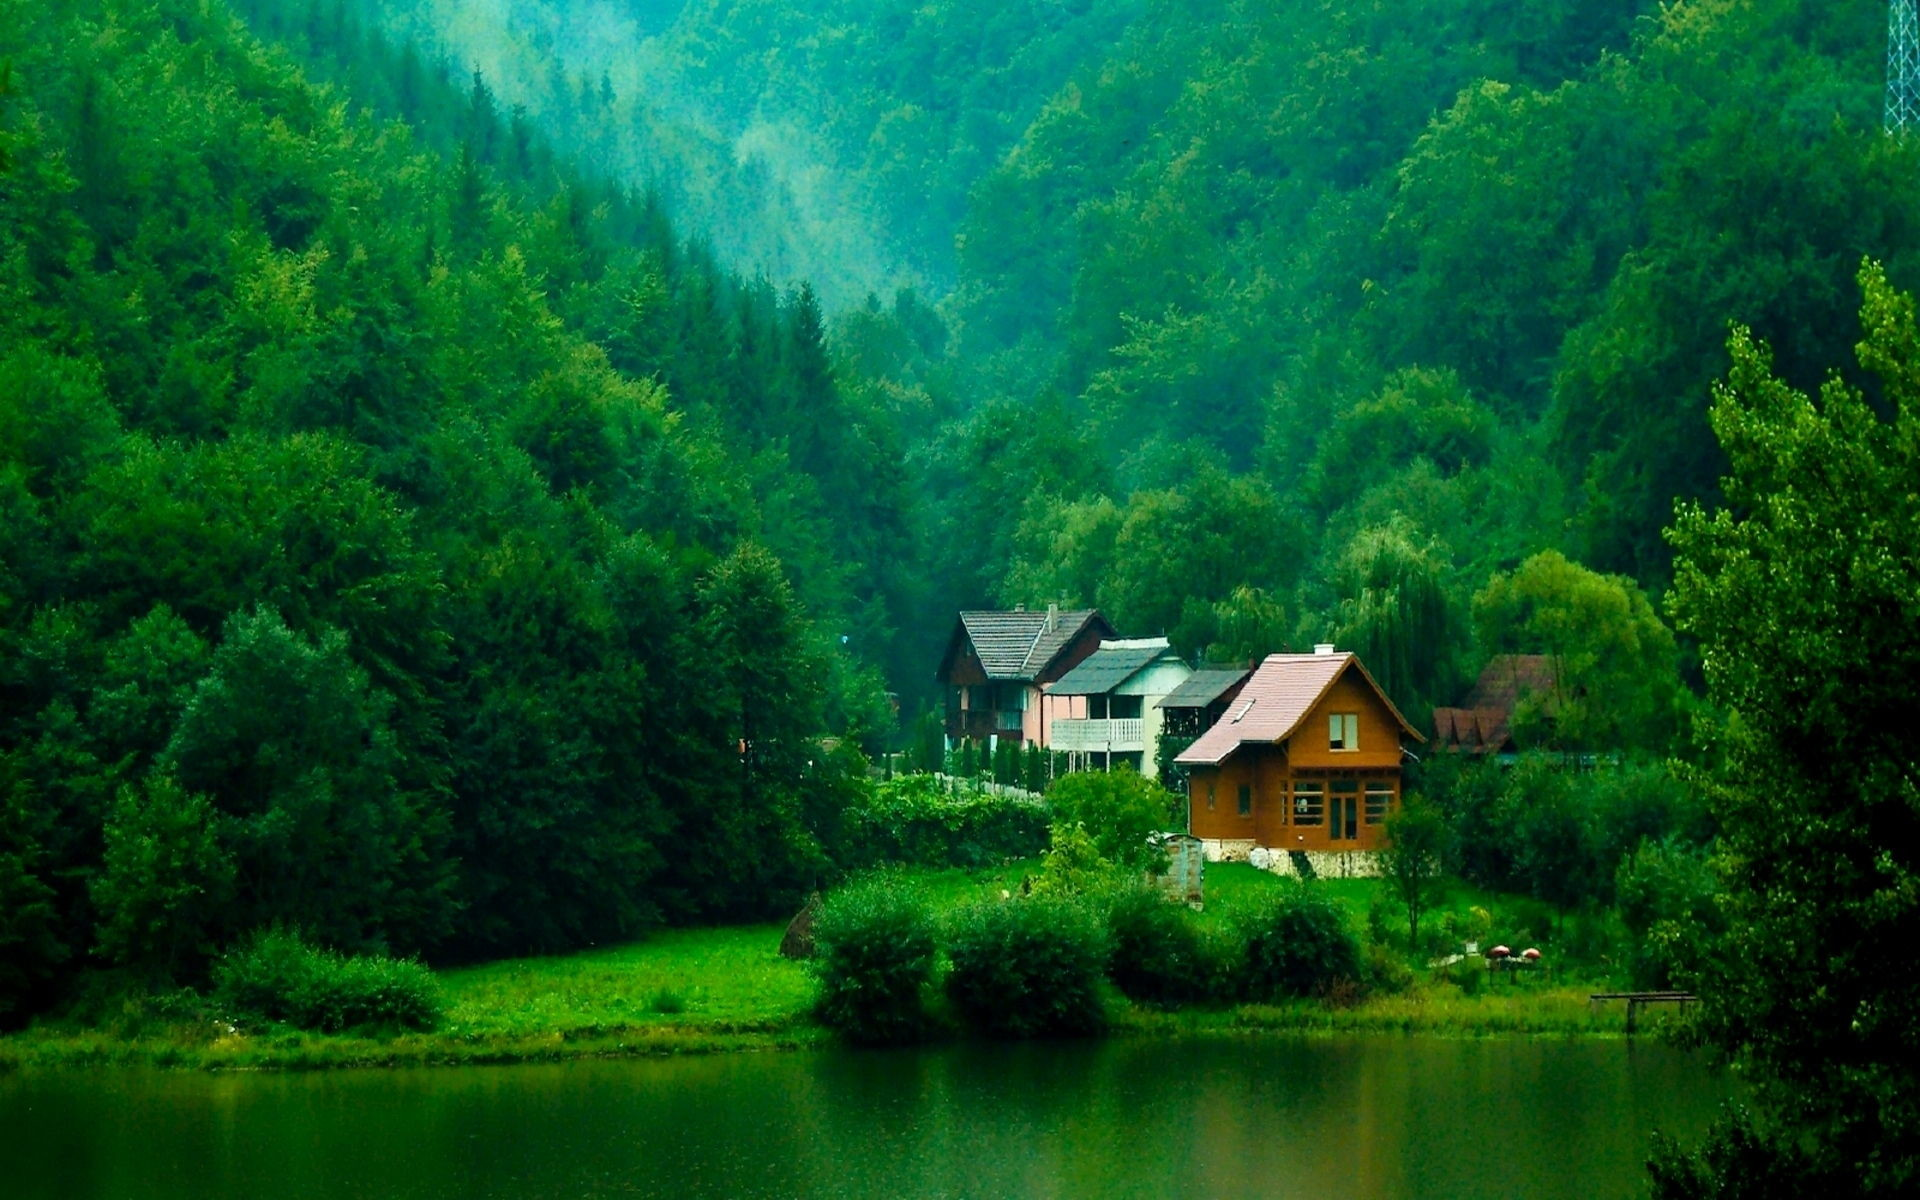 Background Computer Desktop Free Wallpaper Full Size - House In Green Forest , HD Wallpaper & Backgrounds